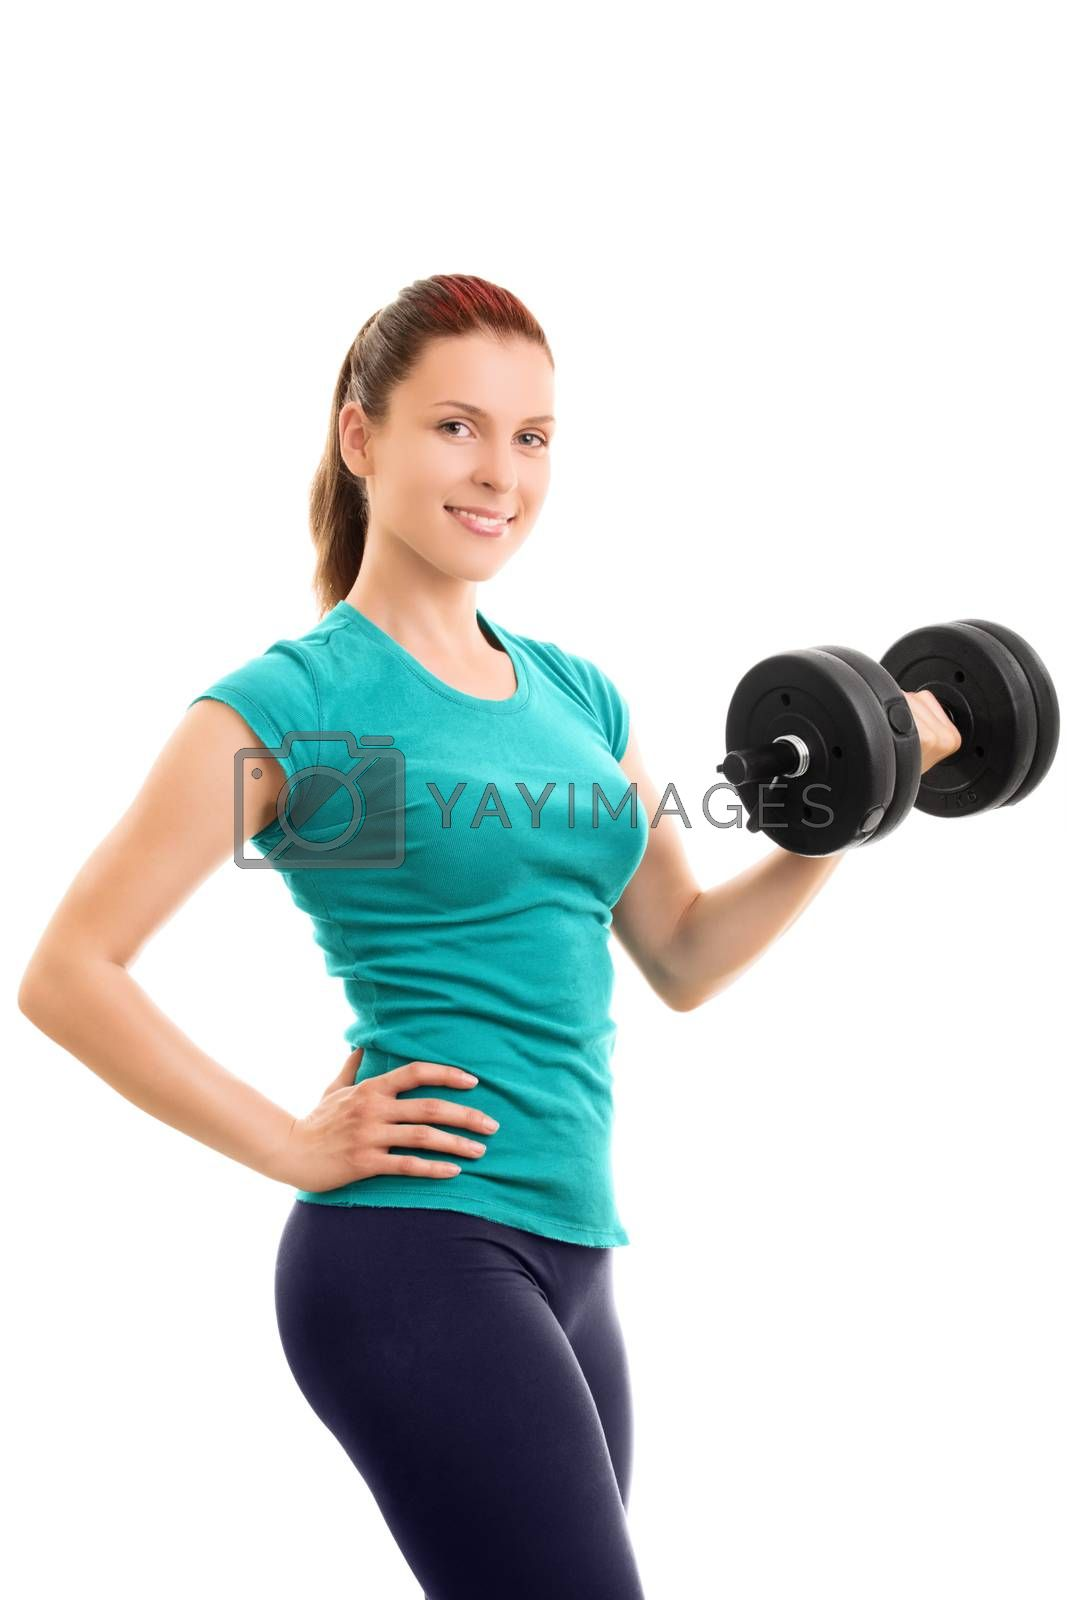 A portrait of a beautiful fit young girl holding a dumbbell, isolated on white background. Beautiful fit young girl lifting a dumbbell, isolated on a white background.